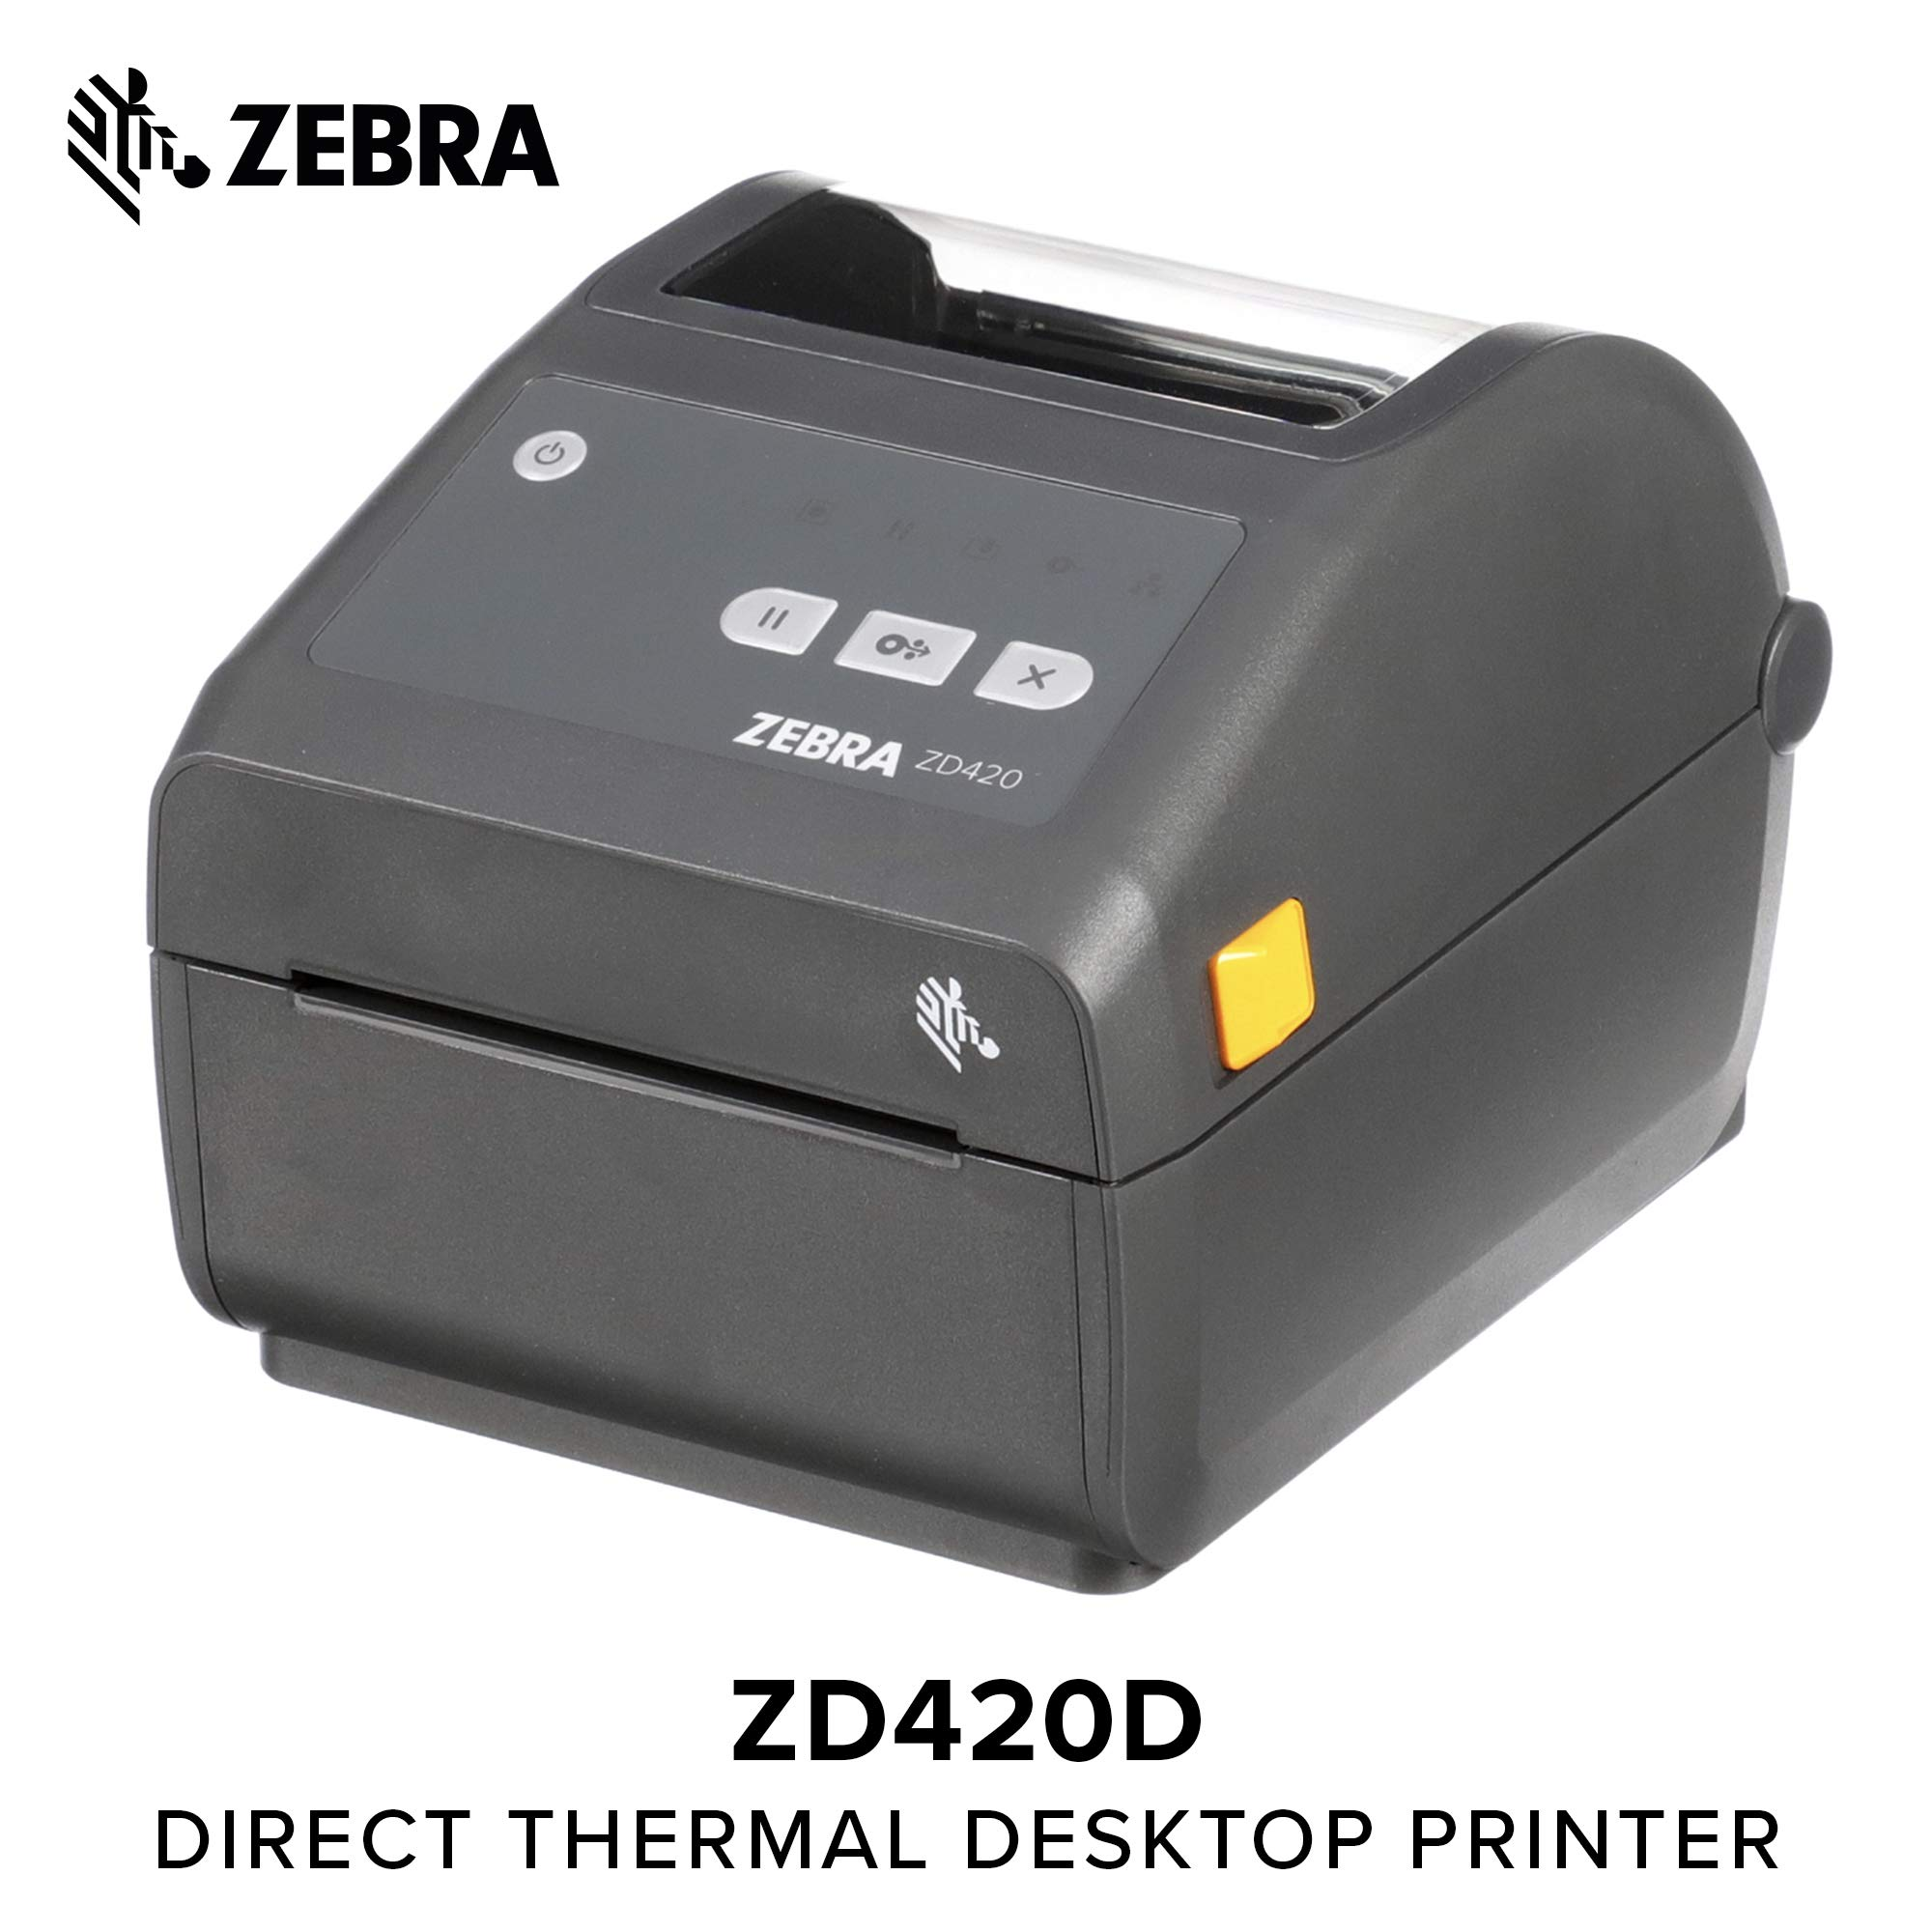 Zebra - ZD420d Direct Thermal Desktop Printer for Labels and Barcodes - Print Width 4 in - 300 dpi - Interface: USB - ZD42043-D01000EZ by Zebra Technologies (Image #1)